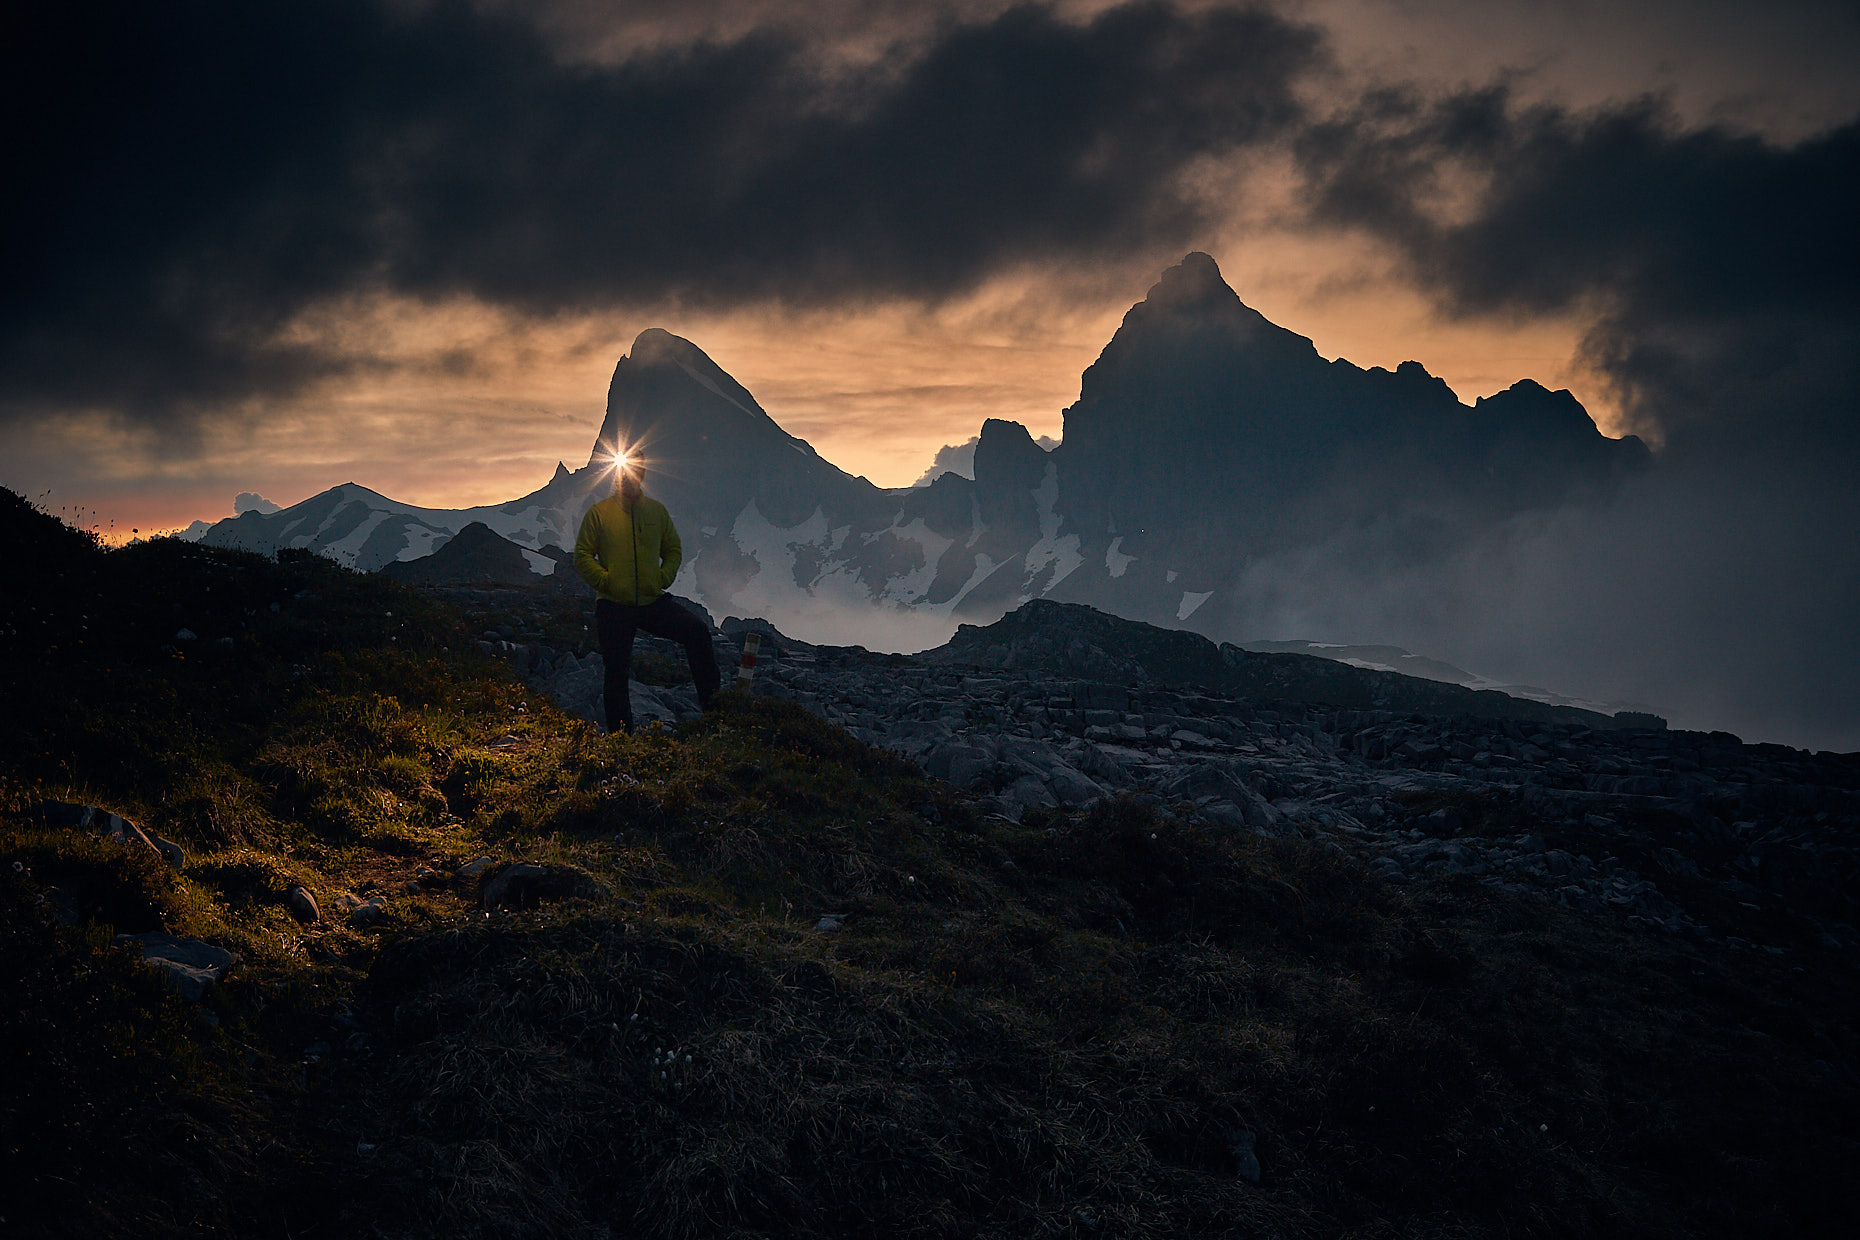 Dusk | Stefan Kuerzi Adventure Photography